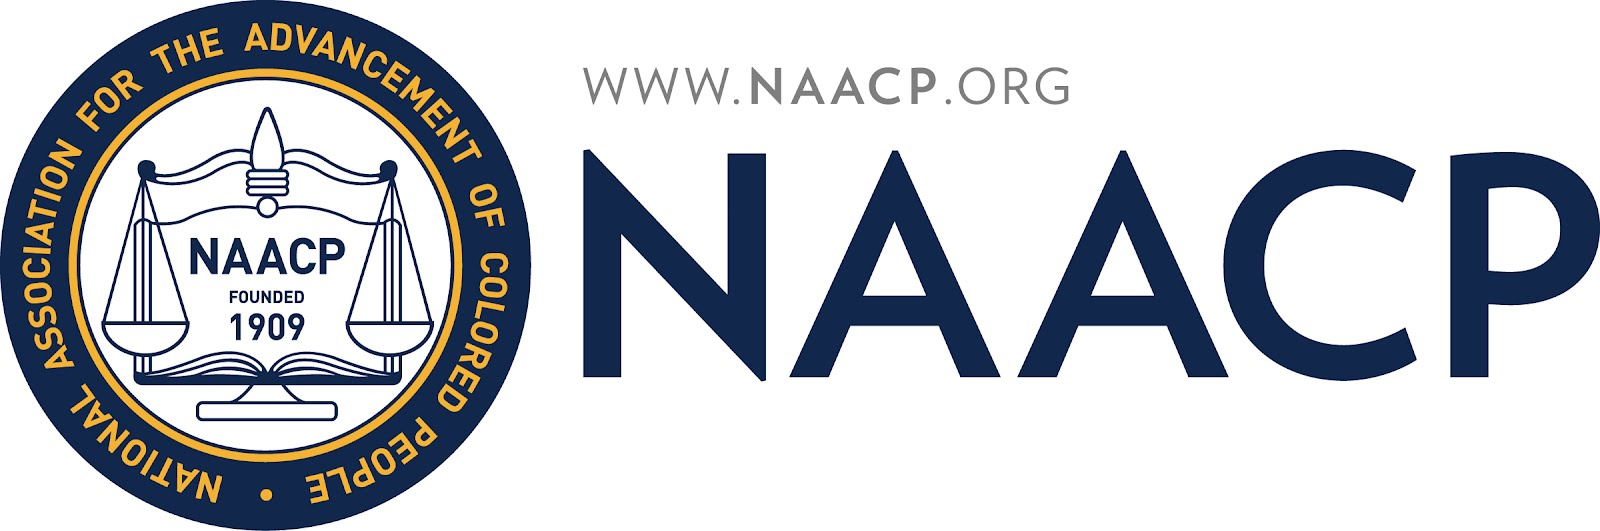 The Black Fist Blog: The Official Website of The Black ... Naacp Logo